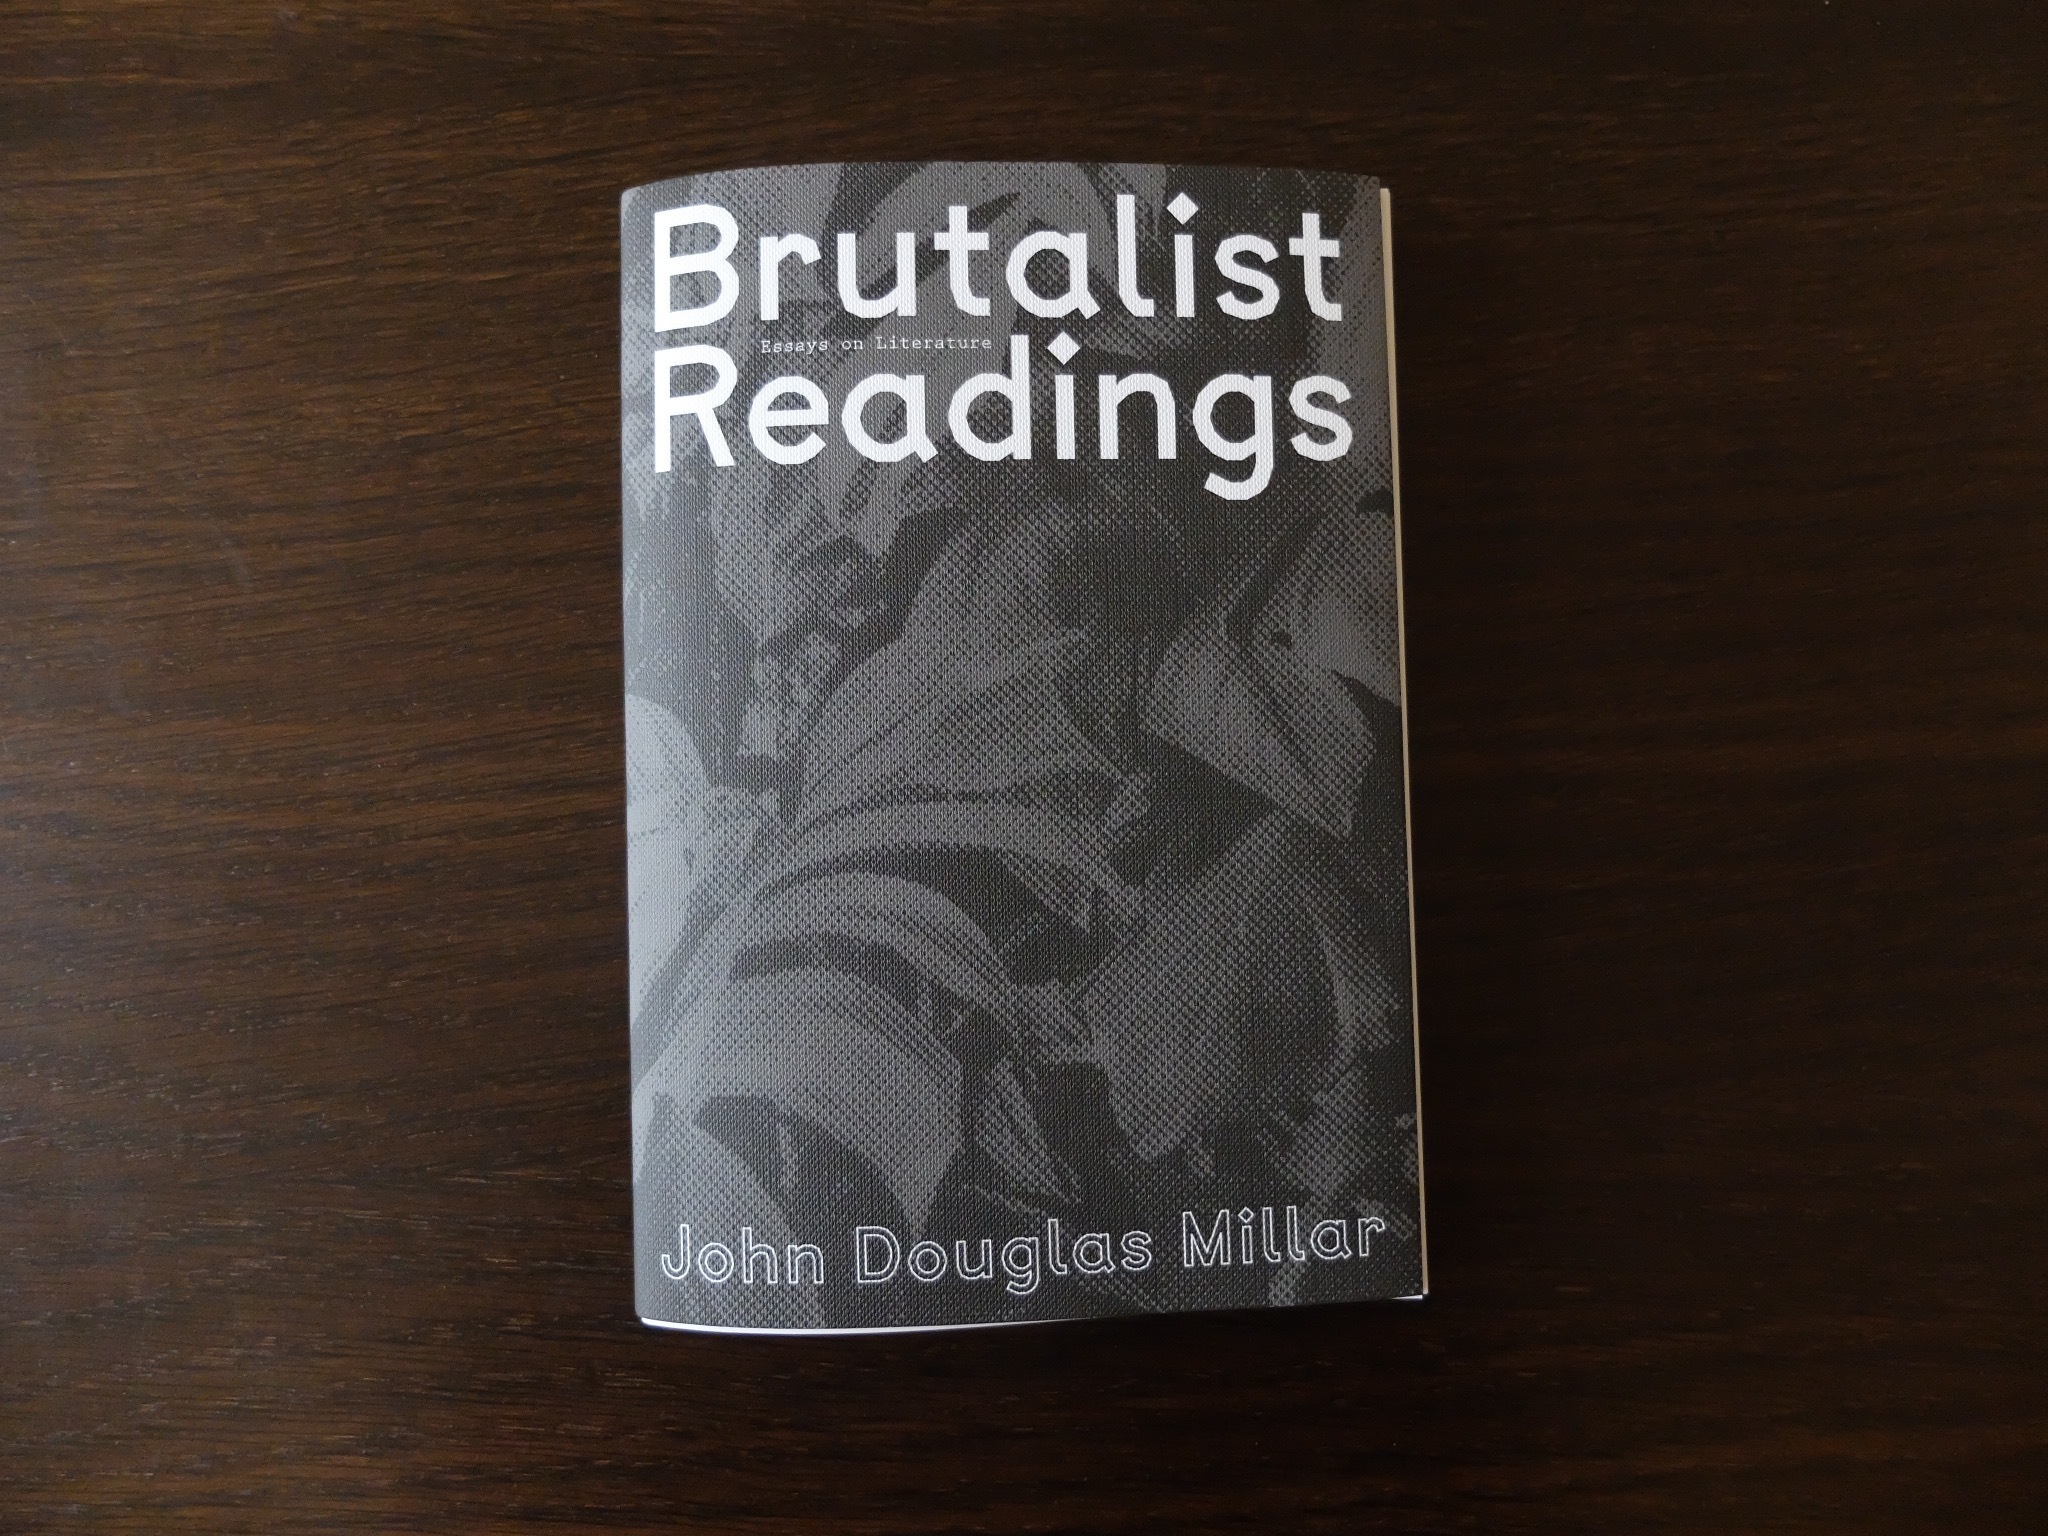 john douglas millar s brutalist readings essays on literature  dscf0031 jpeg2048x1536 910 kb